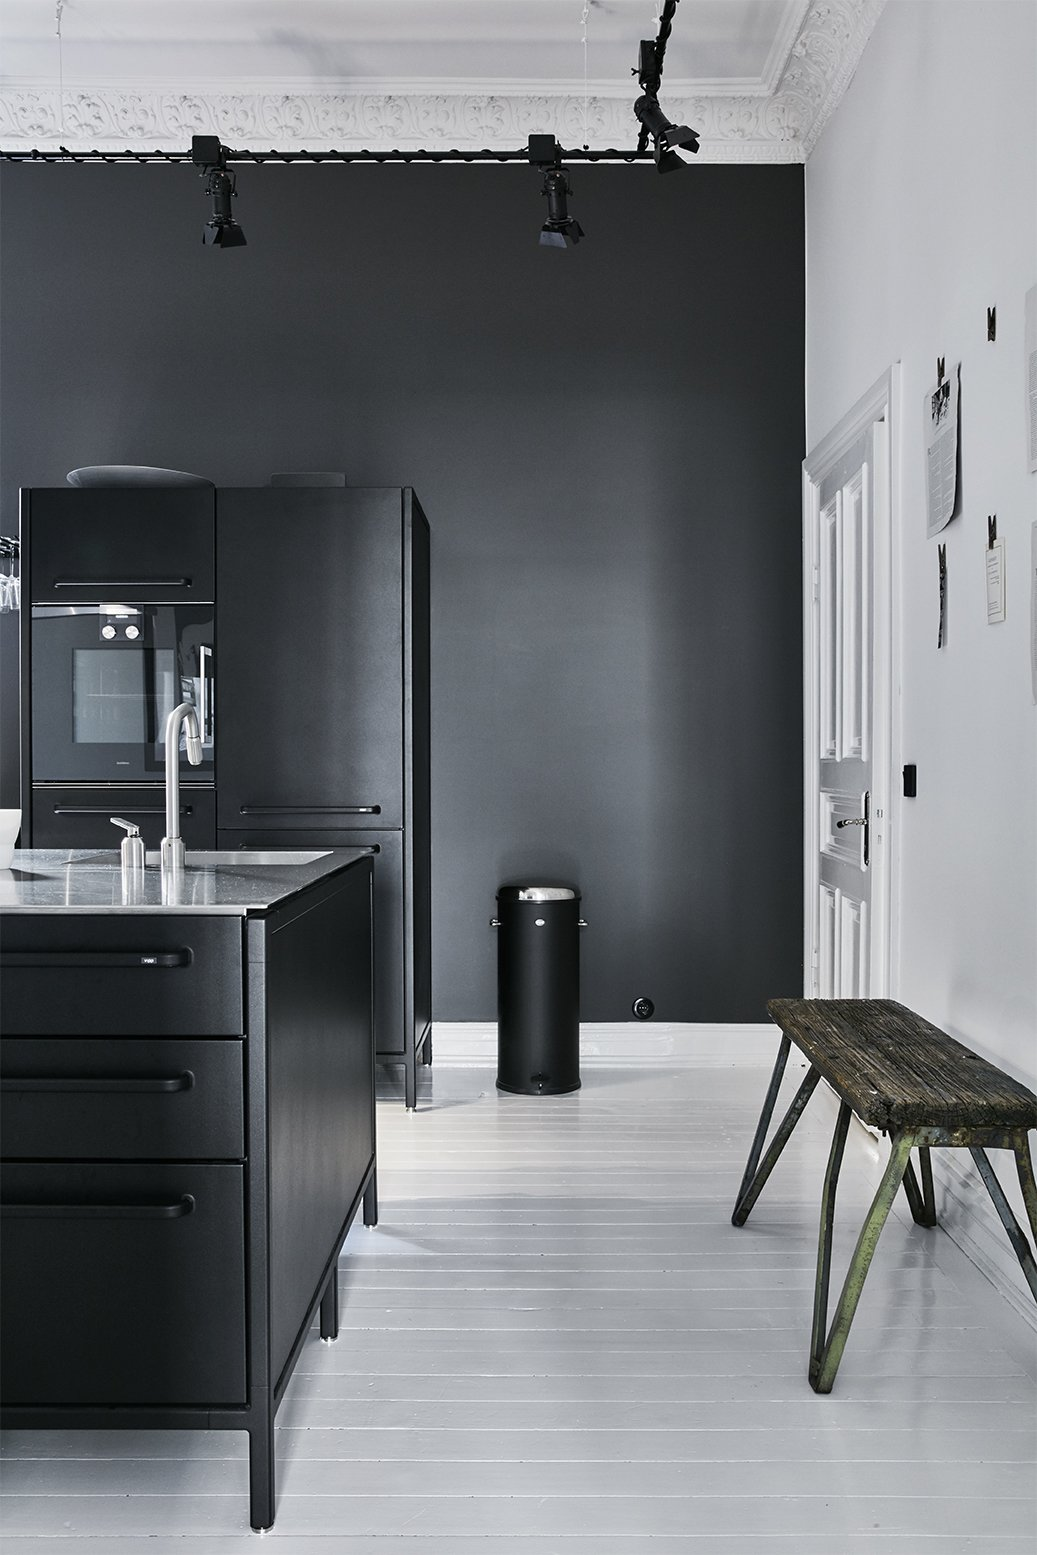 - Gothenburg, Sweden Dwell Magazine : September / October 2017 Tagged: Kitchen, Track Lighting, Wall Oven, Refrigerator, Drop In Sink, and Painted Wood Floor.  Photo 8 of 11 in A Careful Renovation of a 19th-Century Flat in Gothenburg Brings it Back to Life